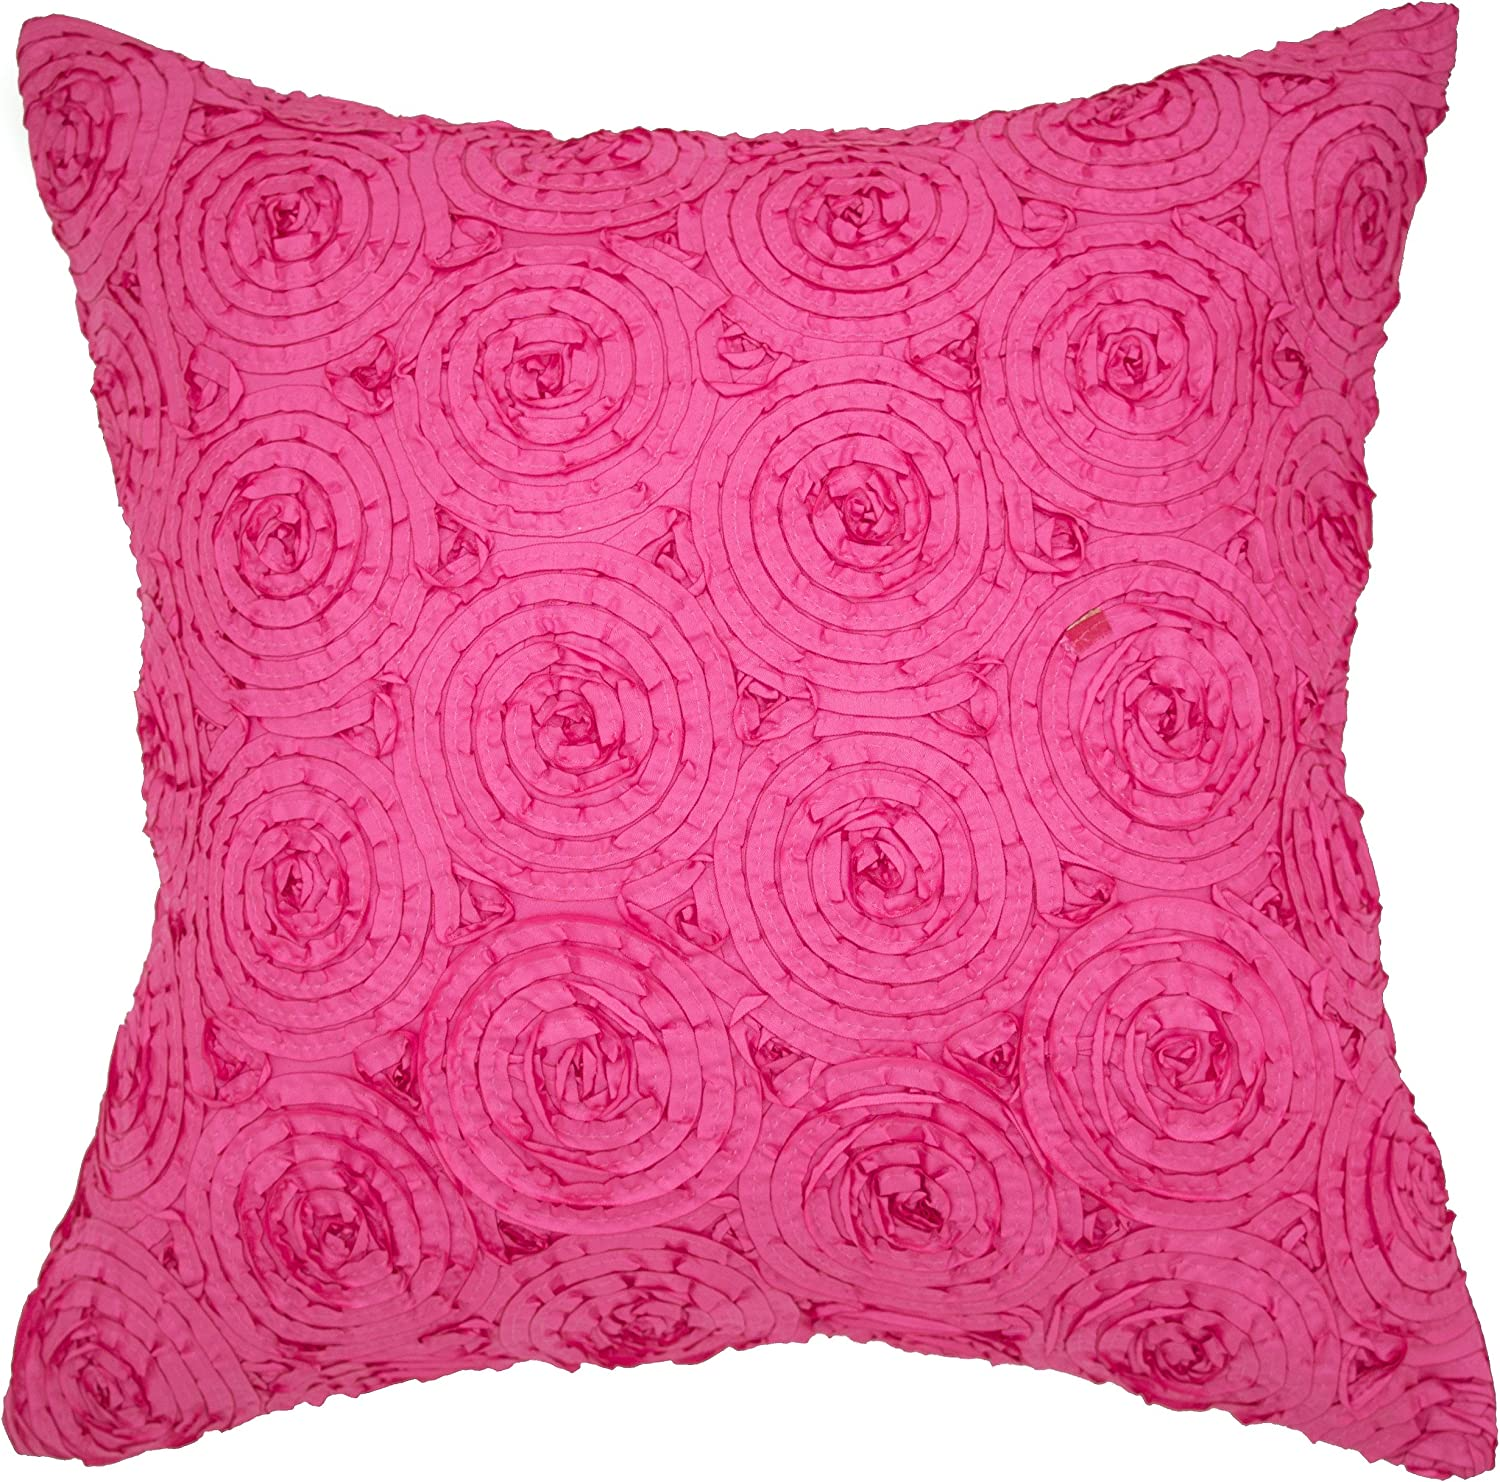 Amazon Com Avarada Solid Floral Bouquet Throw Pillow Cover Decorative Sofa Couch Cushion Cover Zippered 18x18 Inch 45x45 Cm Pink Home Kitchen